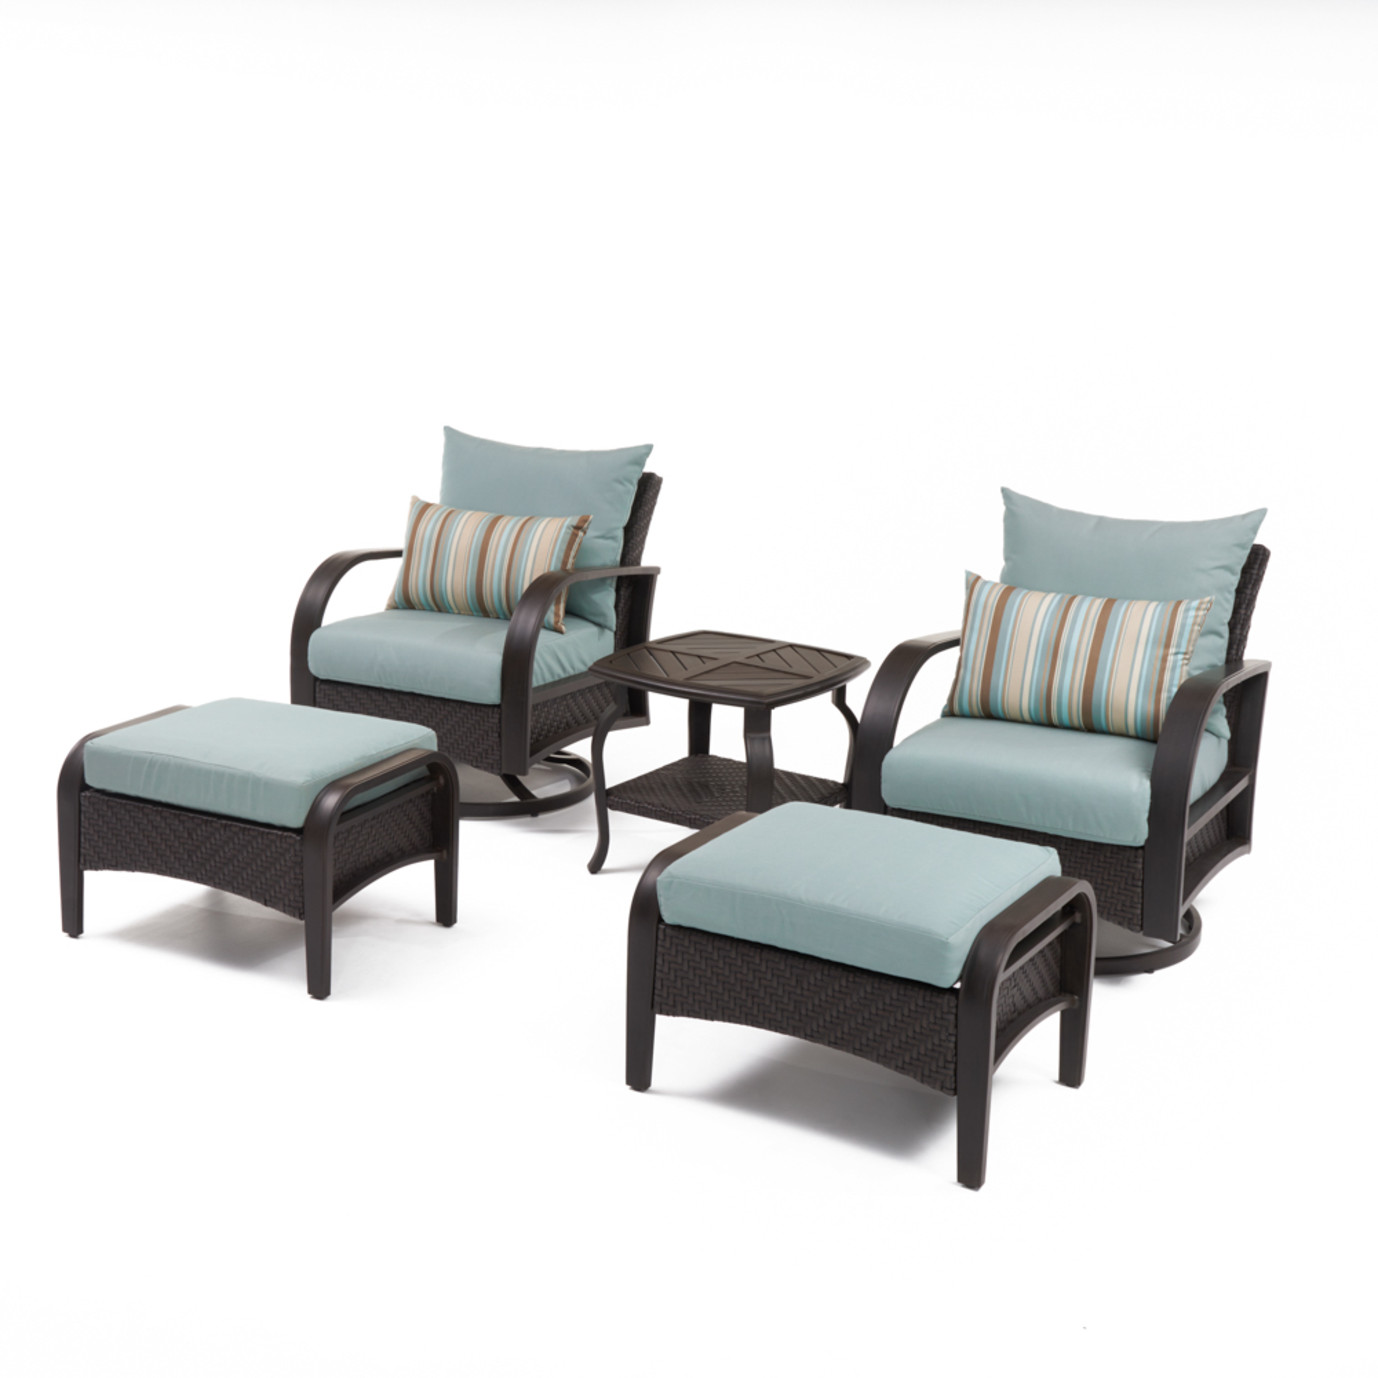 Barcelo™ 5pc Motion Club & Ottoman Set - Bliss Blue